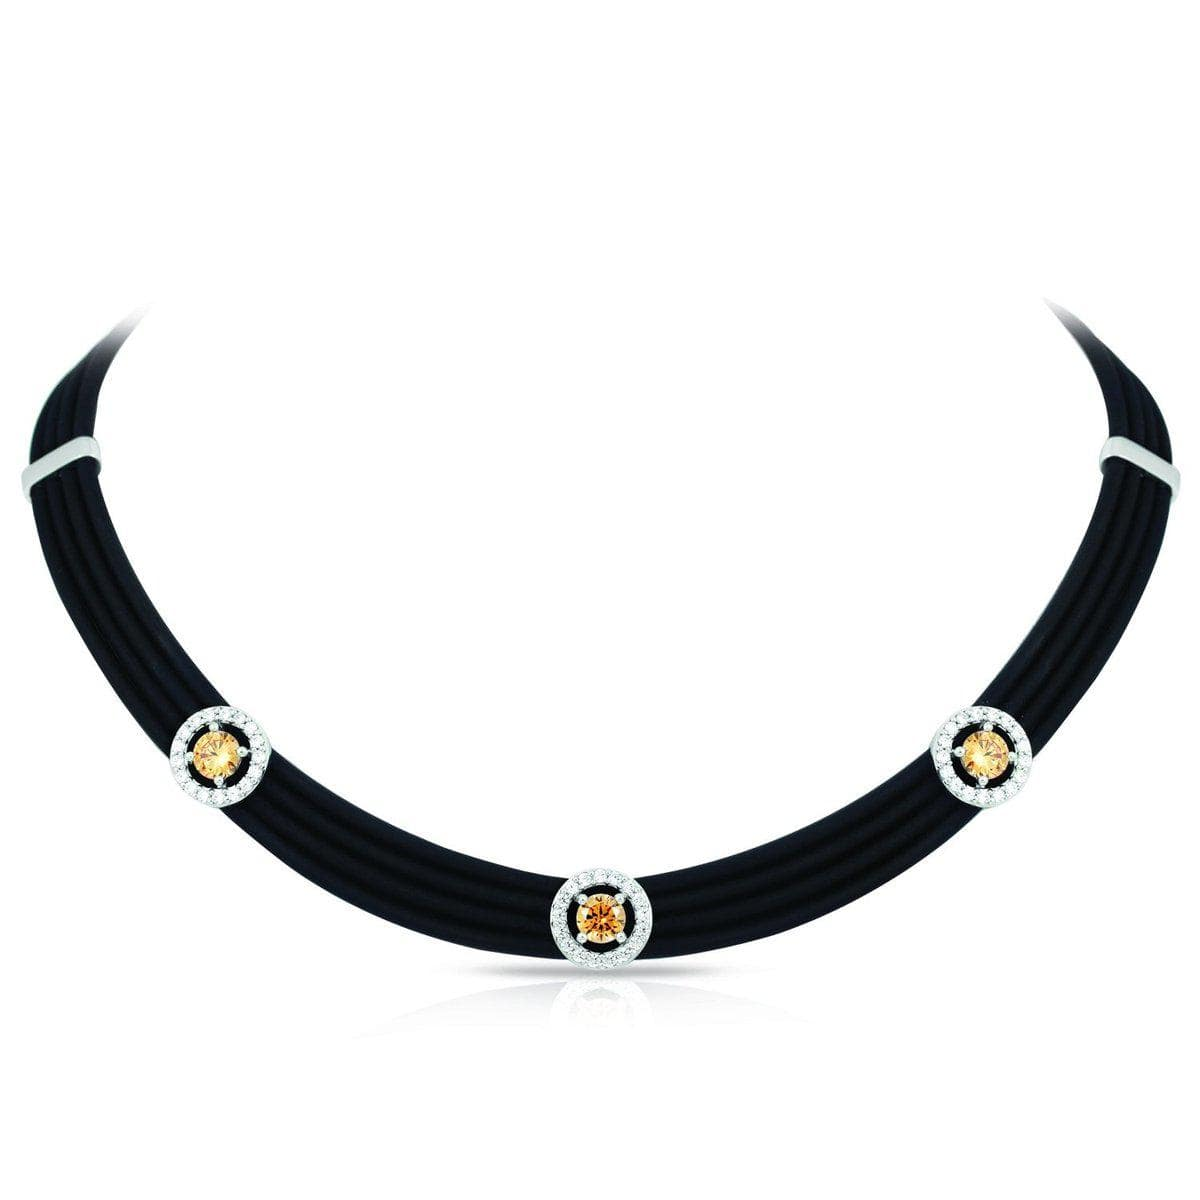 Circa Black and Champagne Necklace